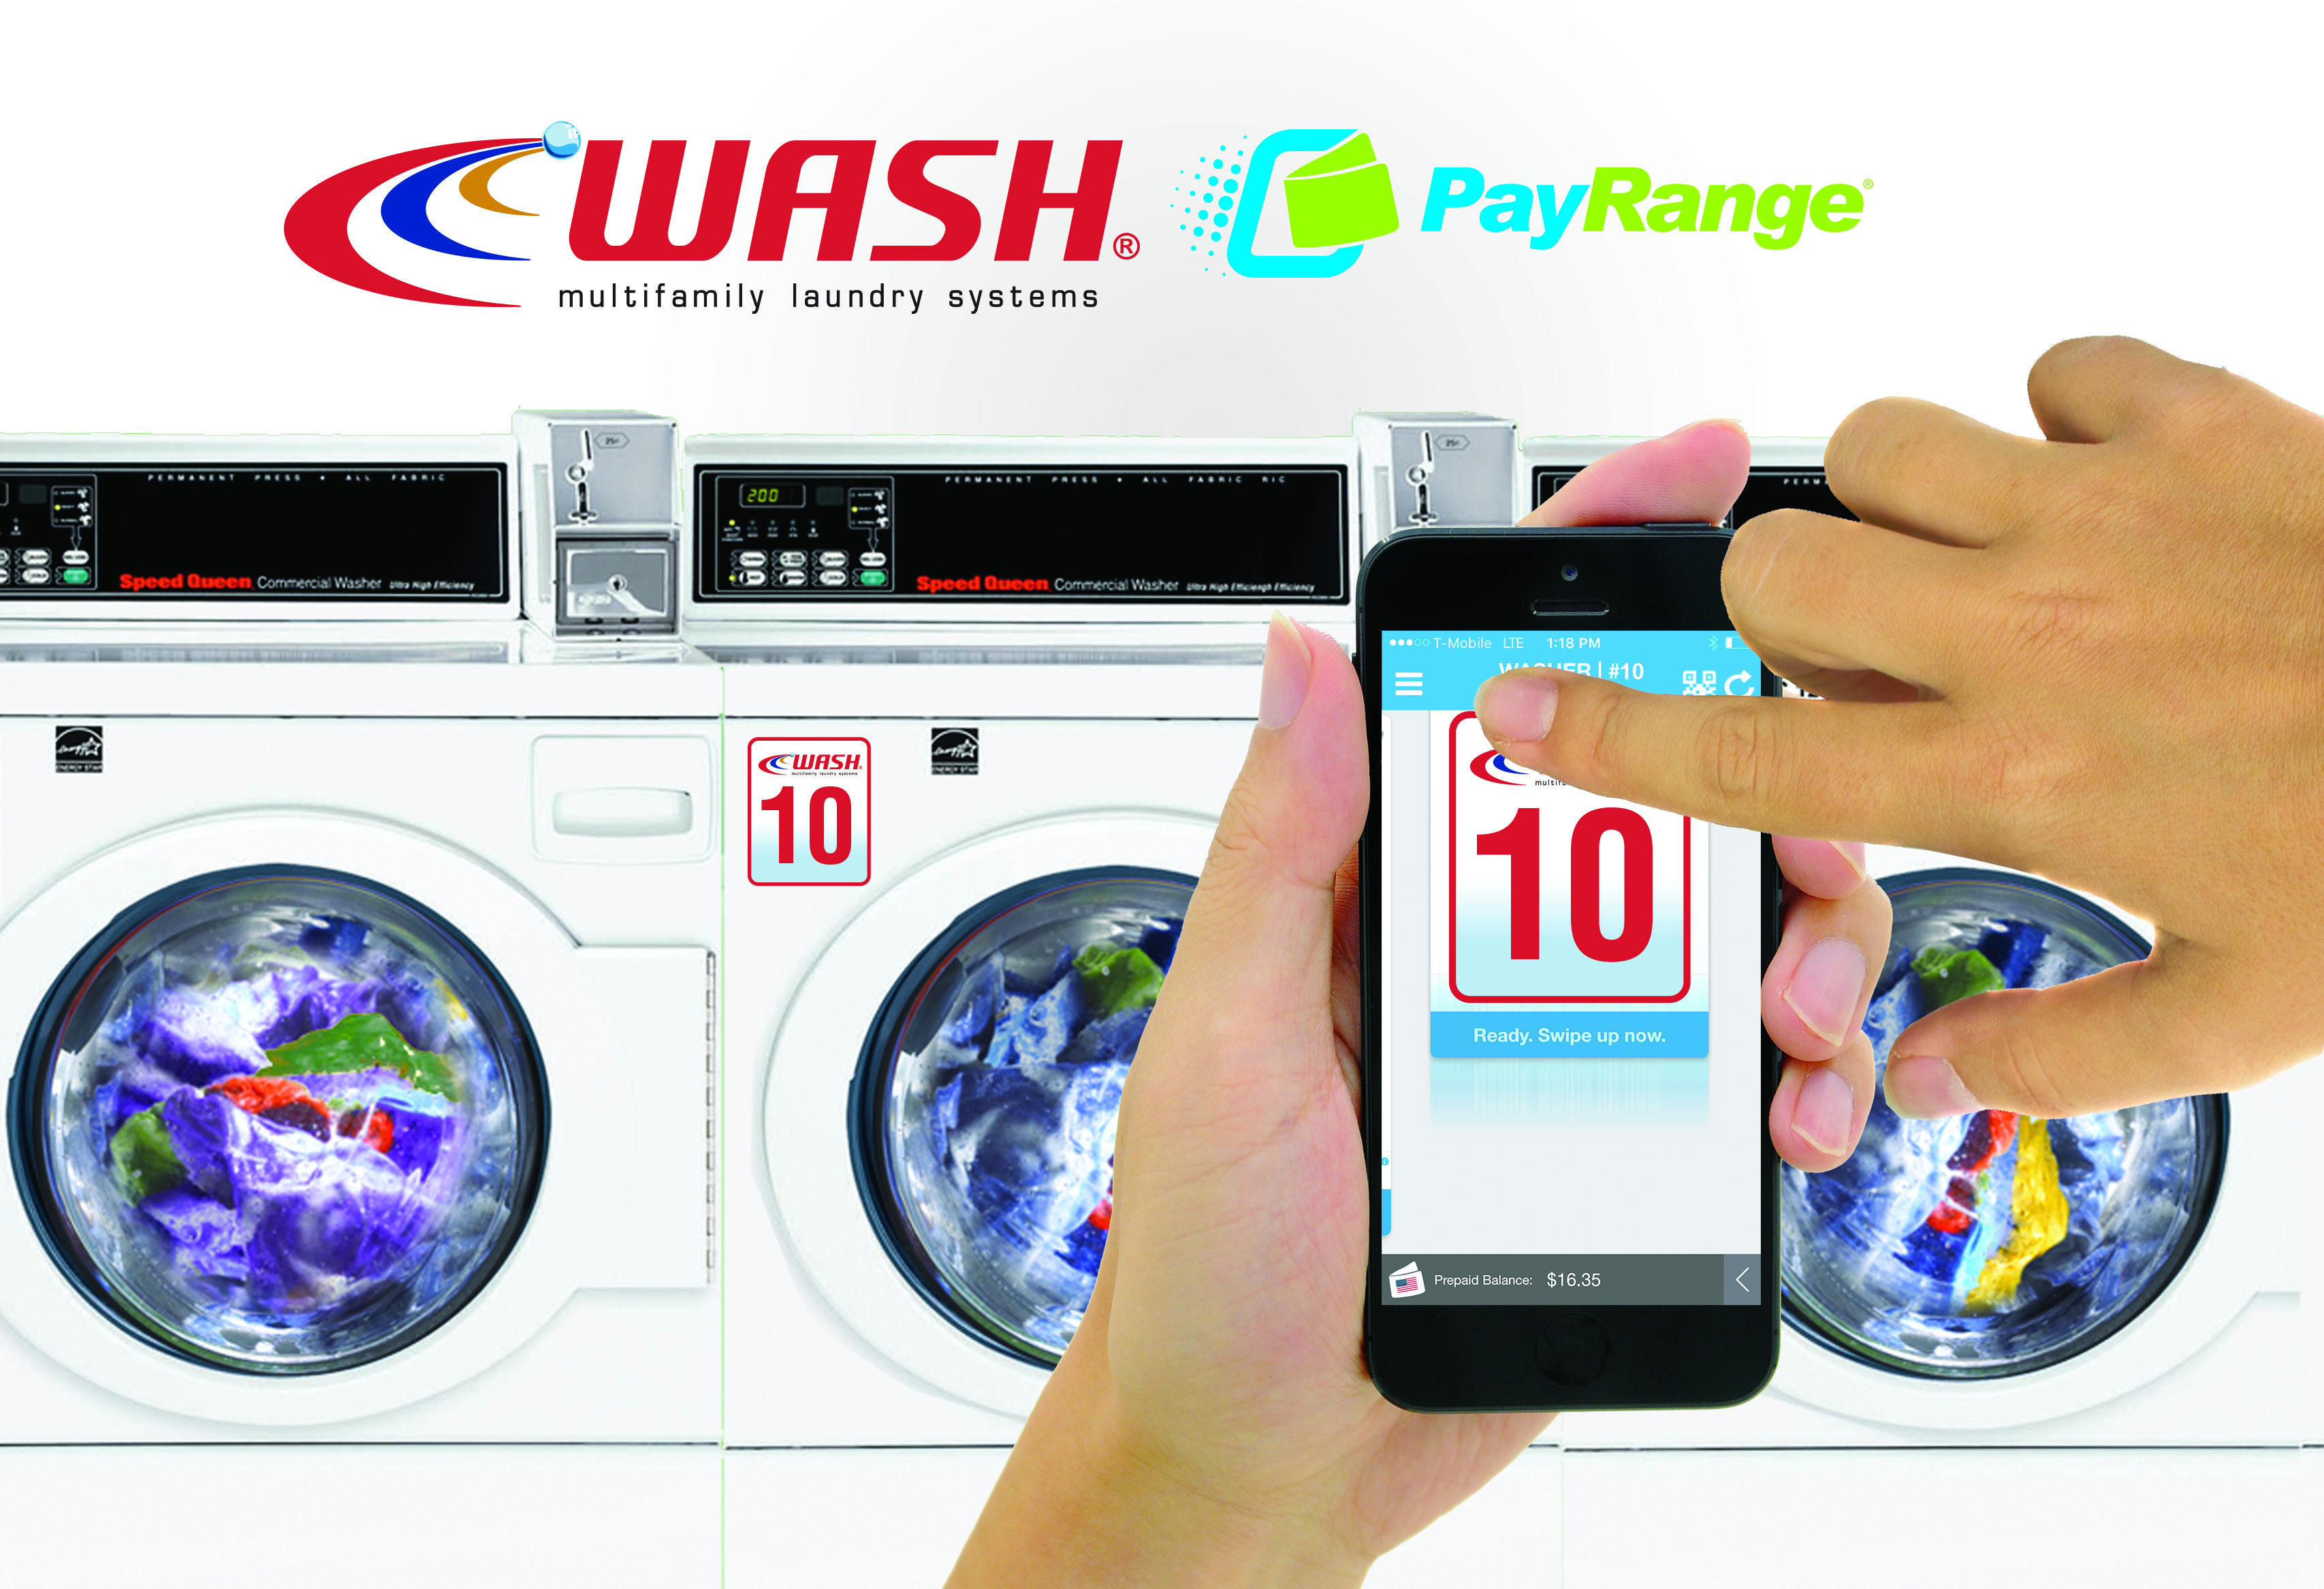 Wash Upgrades Common Area Laundry Rooms With Payrange Mobile Payment Laundry Room Laundry Common Area